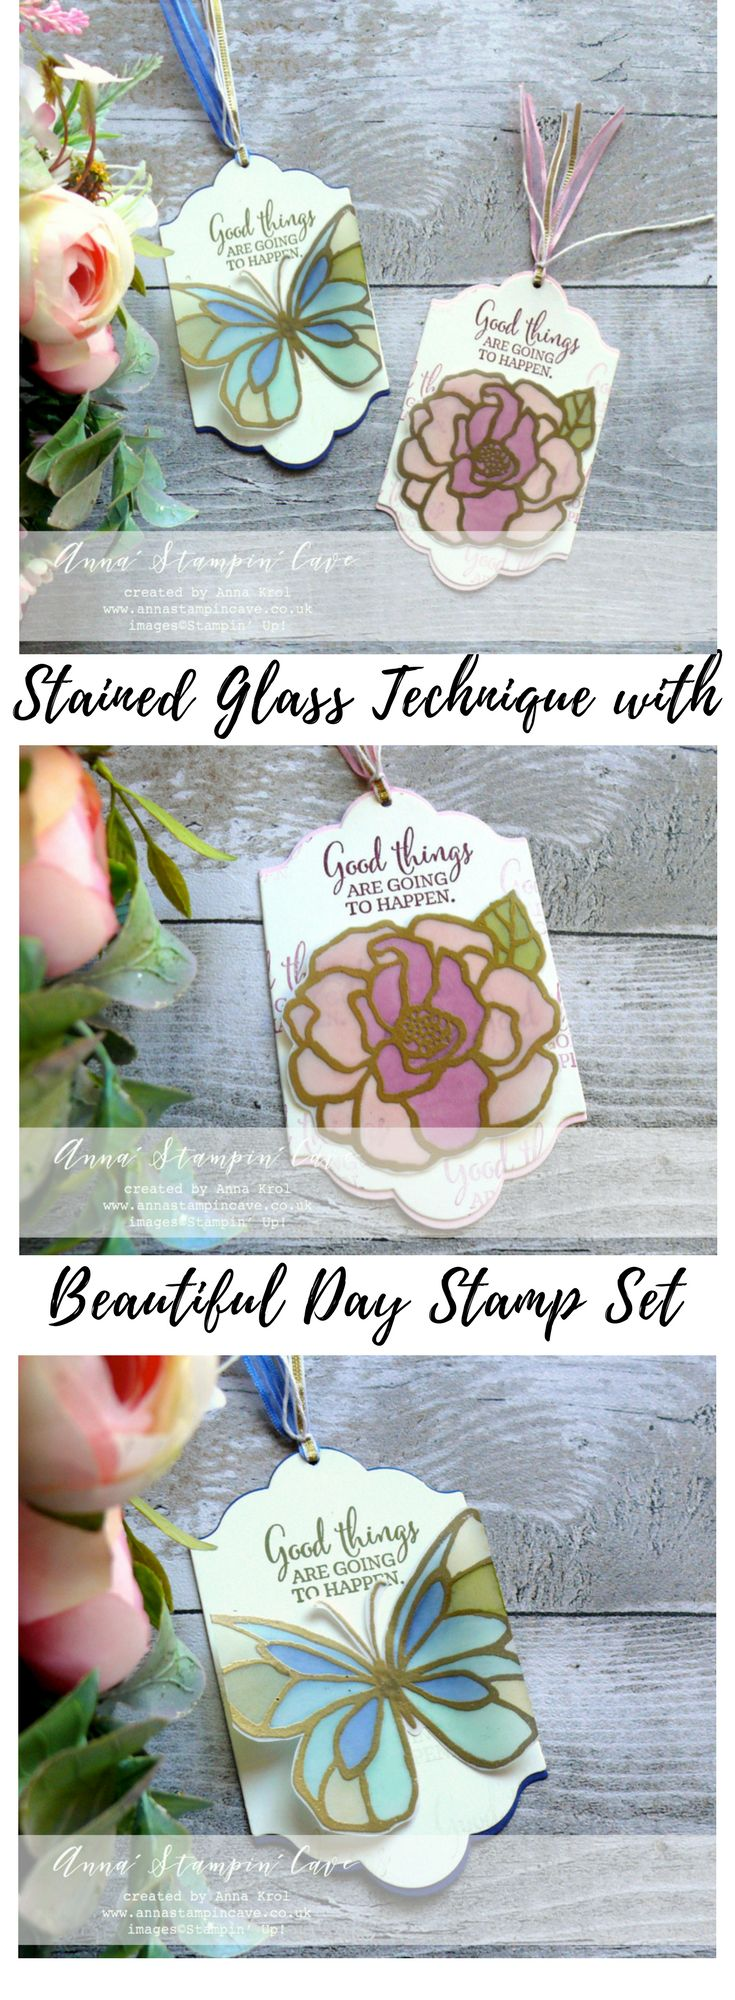 Anna' Stampin' Cave – For The Love of Creating – Beautiful Day Stamp Set Hello and welcome to our very first For the Love of Creating with Stampin' Up! Blog Hop. We are super excited to share with you an array of creations showcasing products from 2018 Occasions (Spring-Summer in the UK) catalogue and Sale-A-Bration freebies …